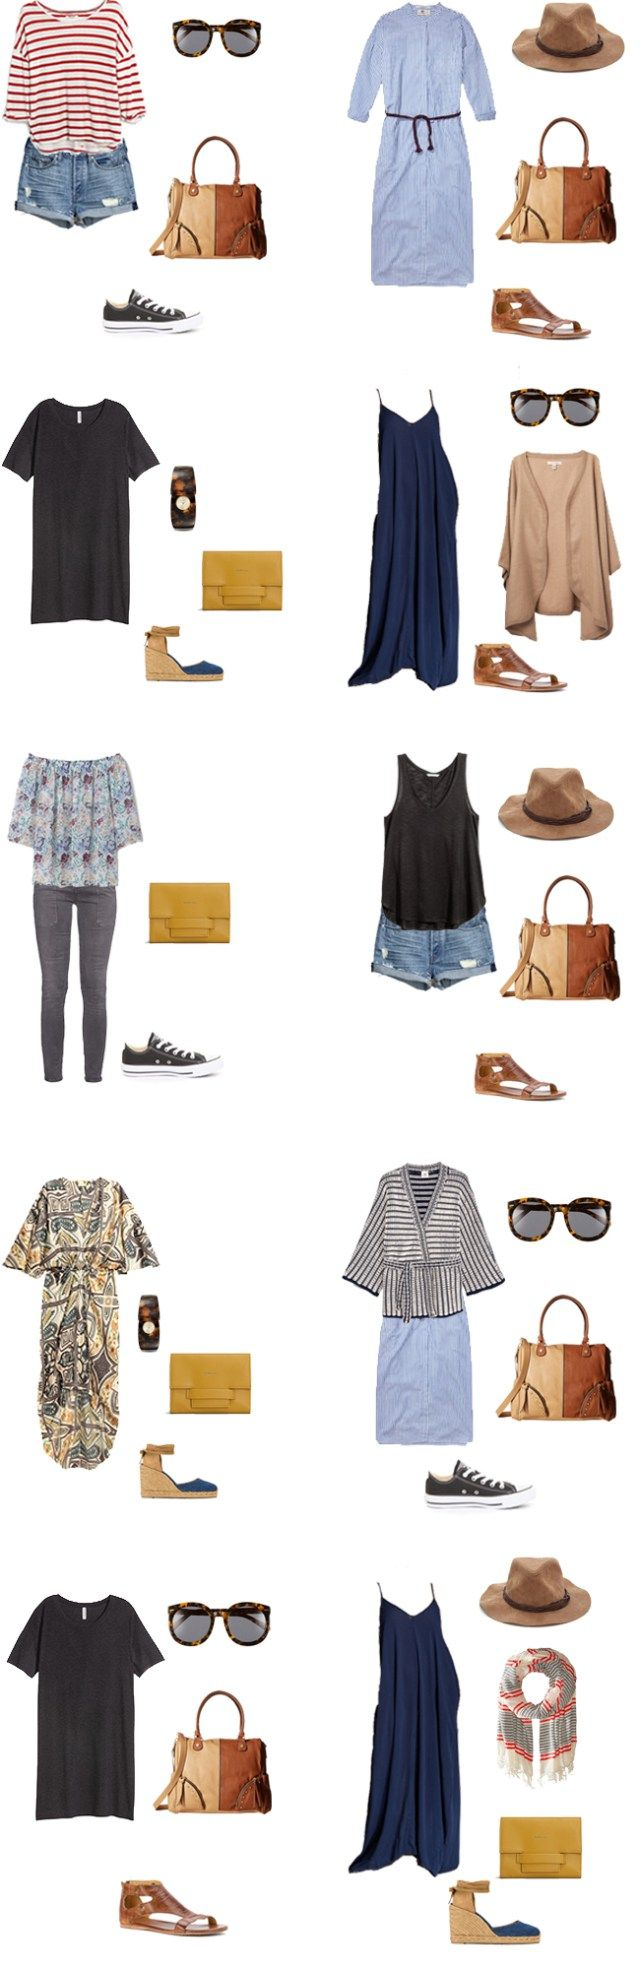 Best 20 Caribbean Cruise Outfits Ideas On Pinterest Tropical Vacation Outfits Cruise Packing